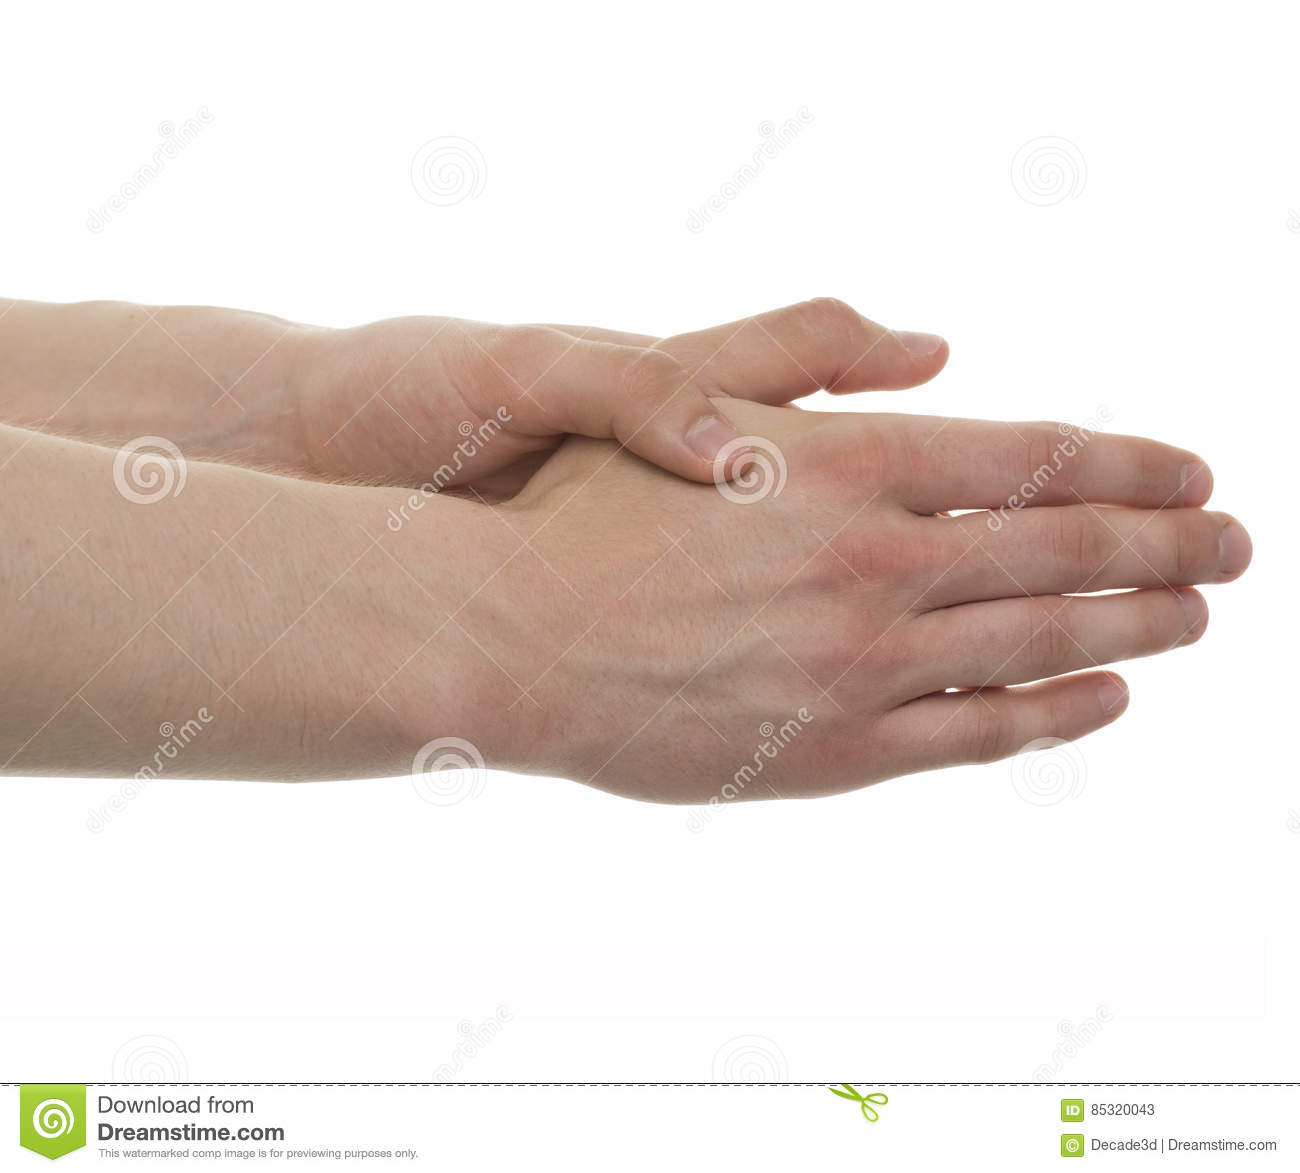 Male Hand Anatomy - Studio shot with 3D illustration isolated on